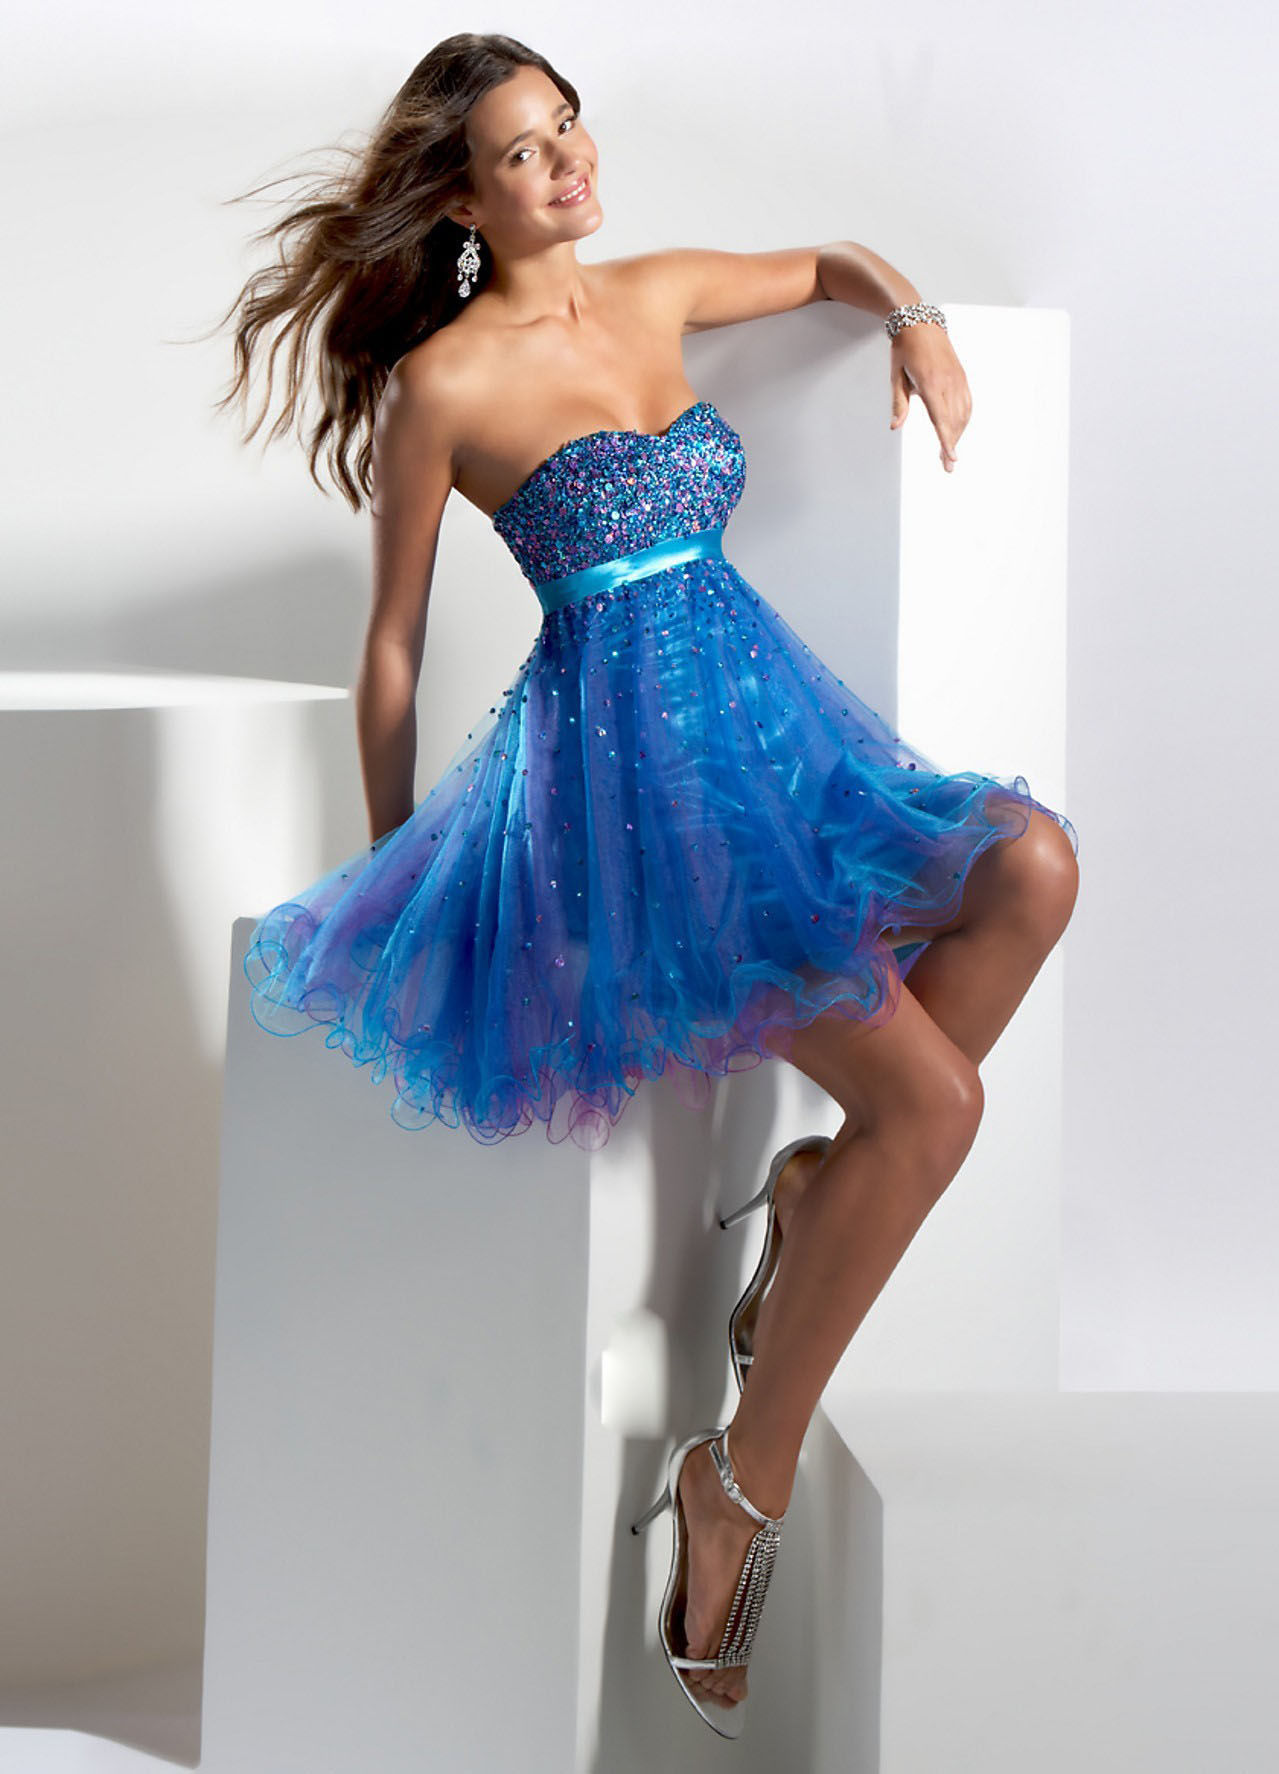 Beautiful Bright Blue Dress Pictures, Photos, and Images for ...